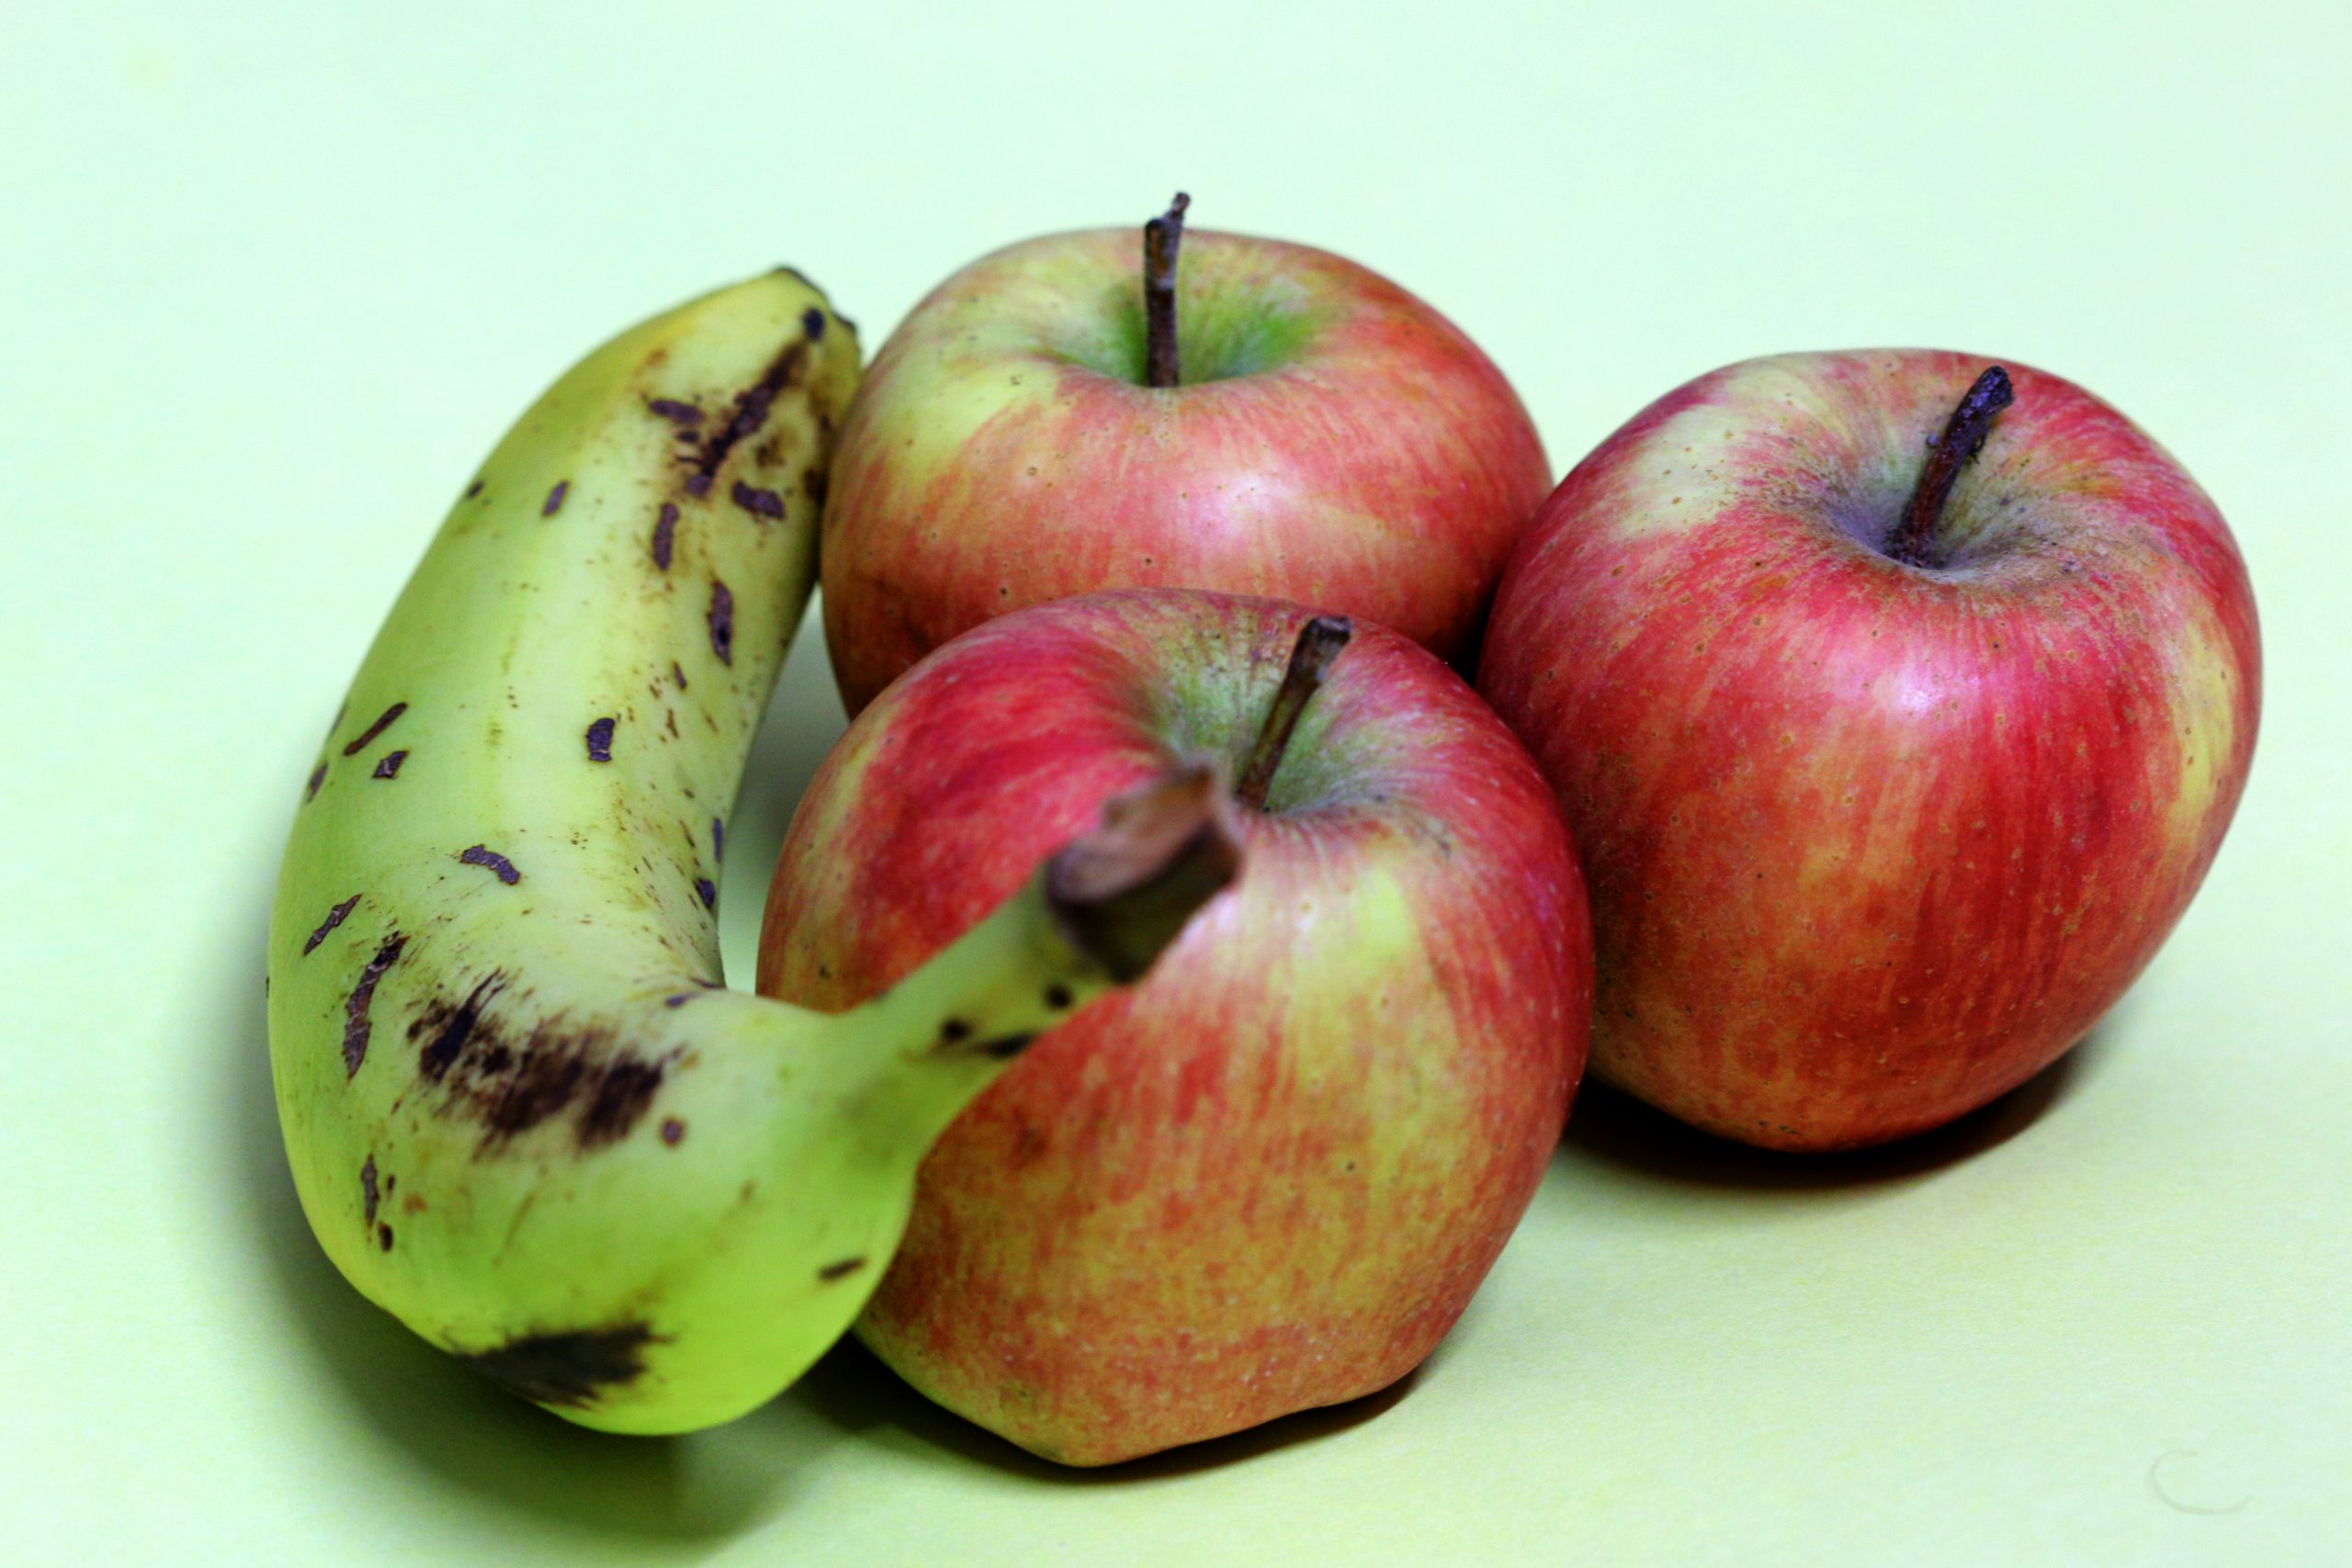 Apples and a banana on light green background.